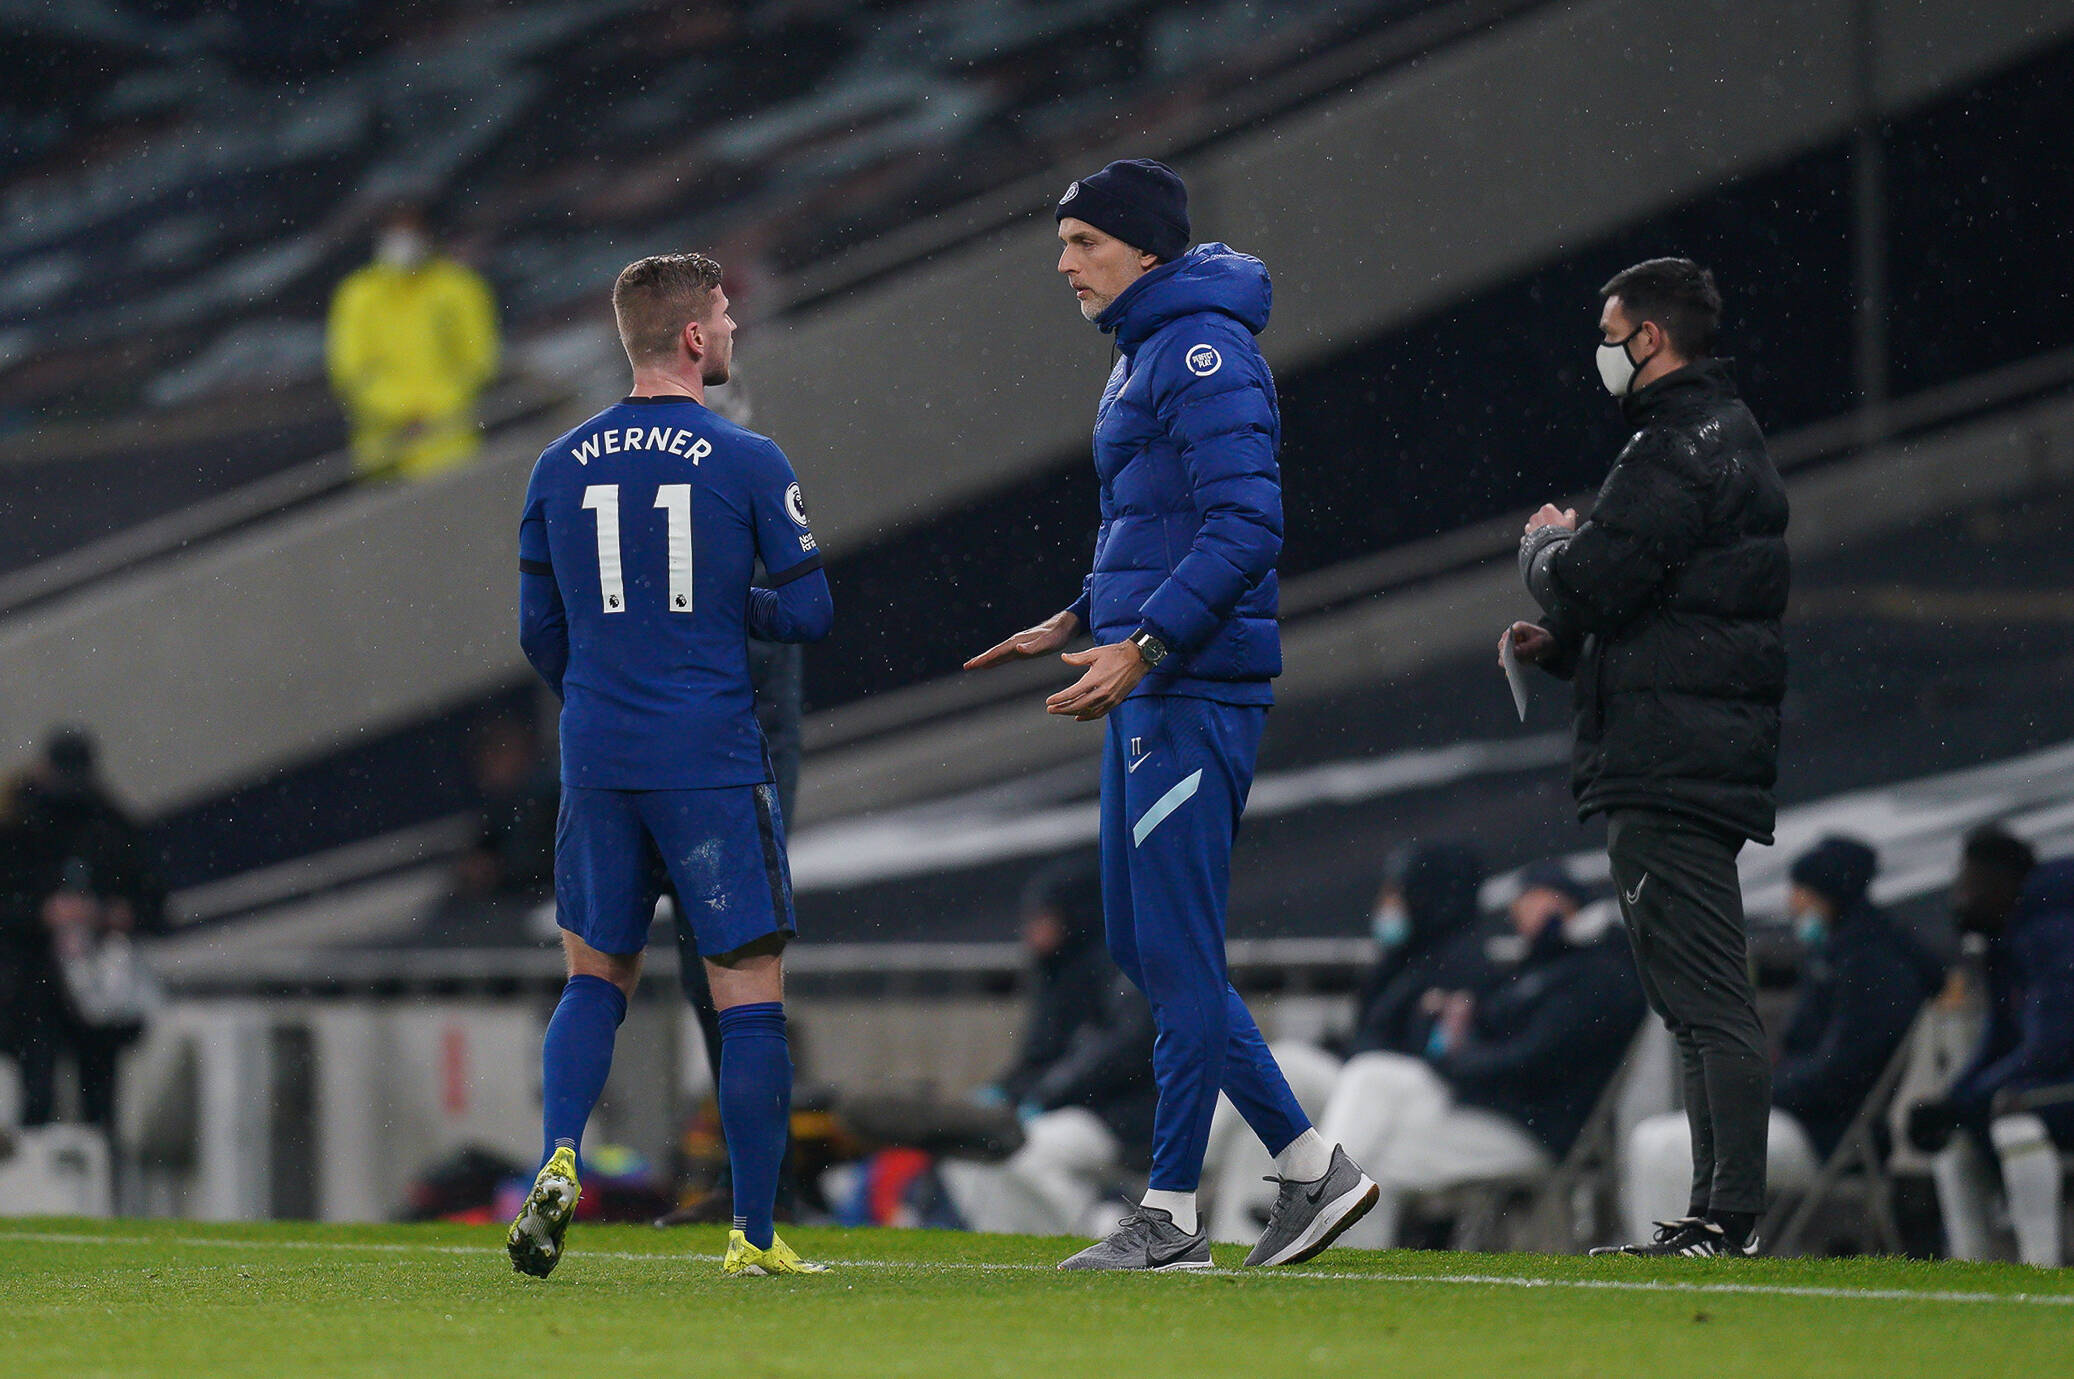 Tuchel had a go at Timo Werner during Chelsea's game vs Everton